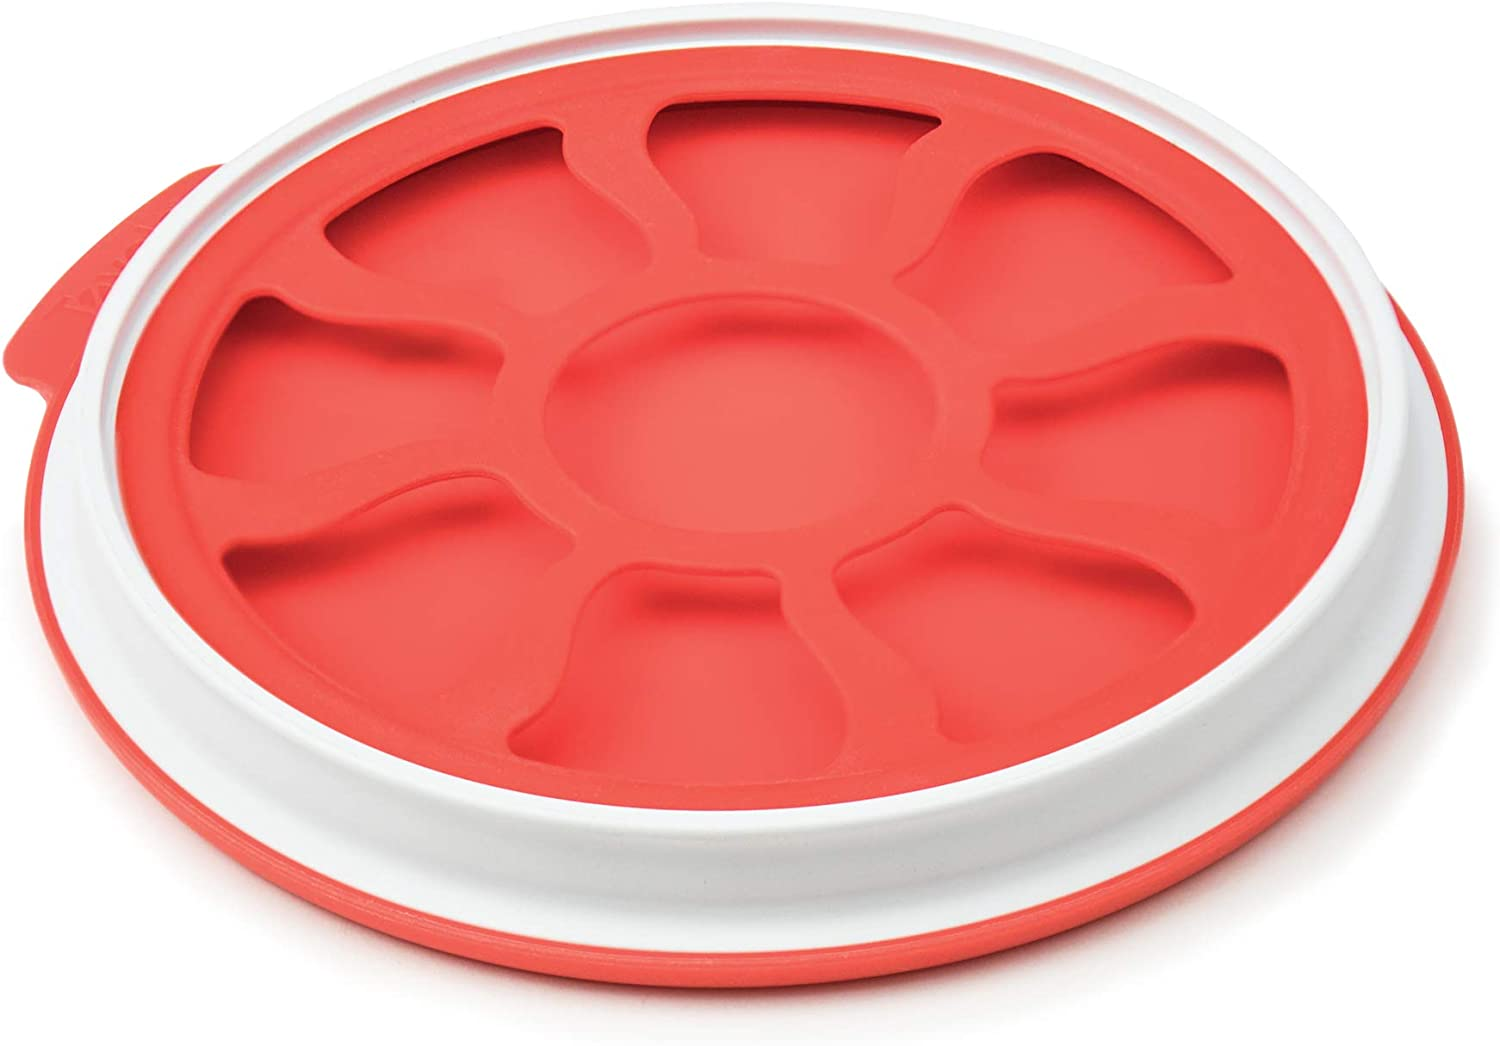 Tovolo Produce Keeper Food Storage for Fruit, Onions & Veggies - Seal 'N Store, Large, Red